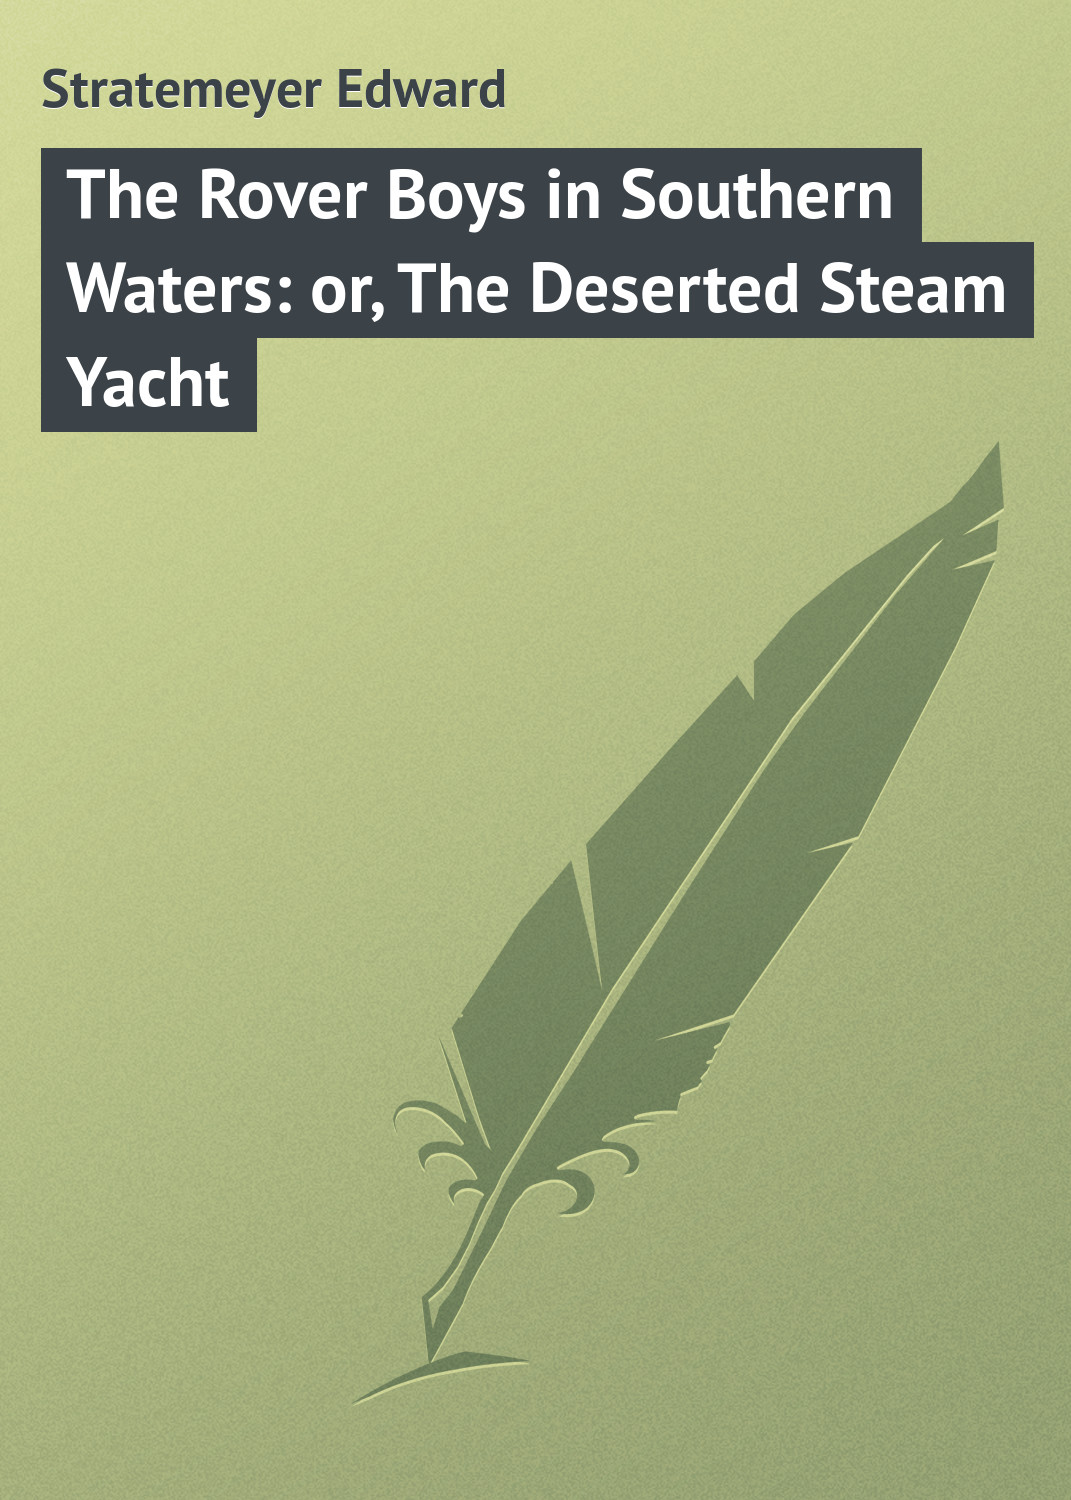 Stratemeyer Edward The Rover Boys in Southern Waters: or, The Deserted Steam Yacht stratemeyer edward the rover boys in the land of luck or stirring adventures in the oil fields